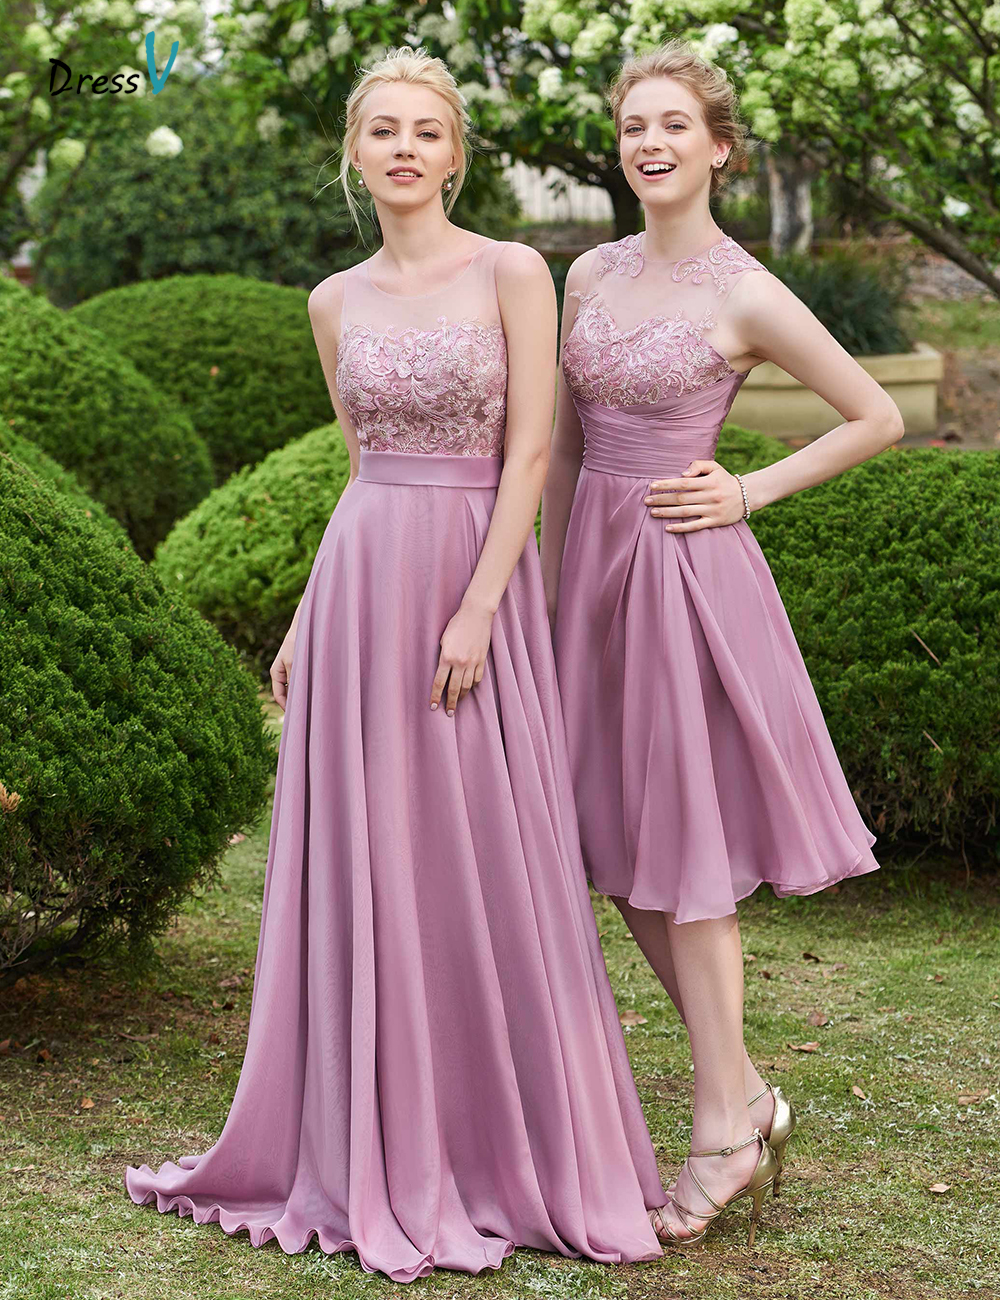 Famoso Vestidos De Las Damas De Honor Escocia Foto - Ideas de ...